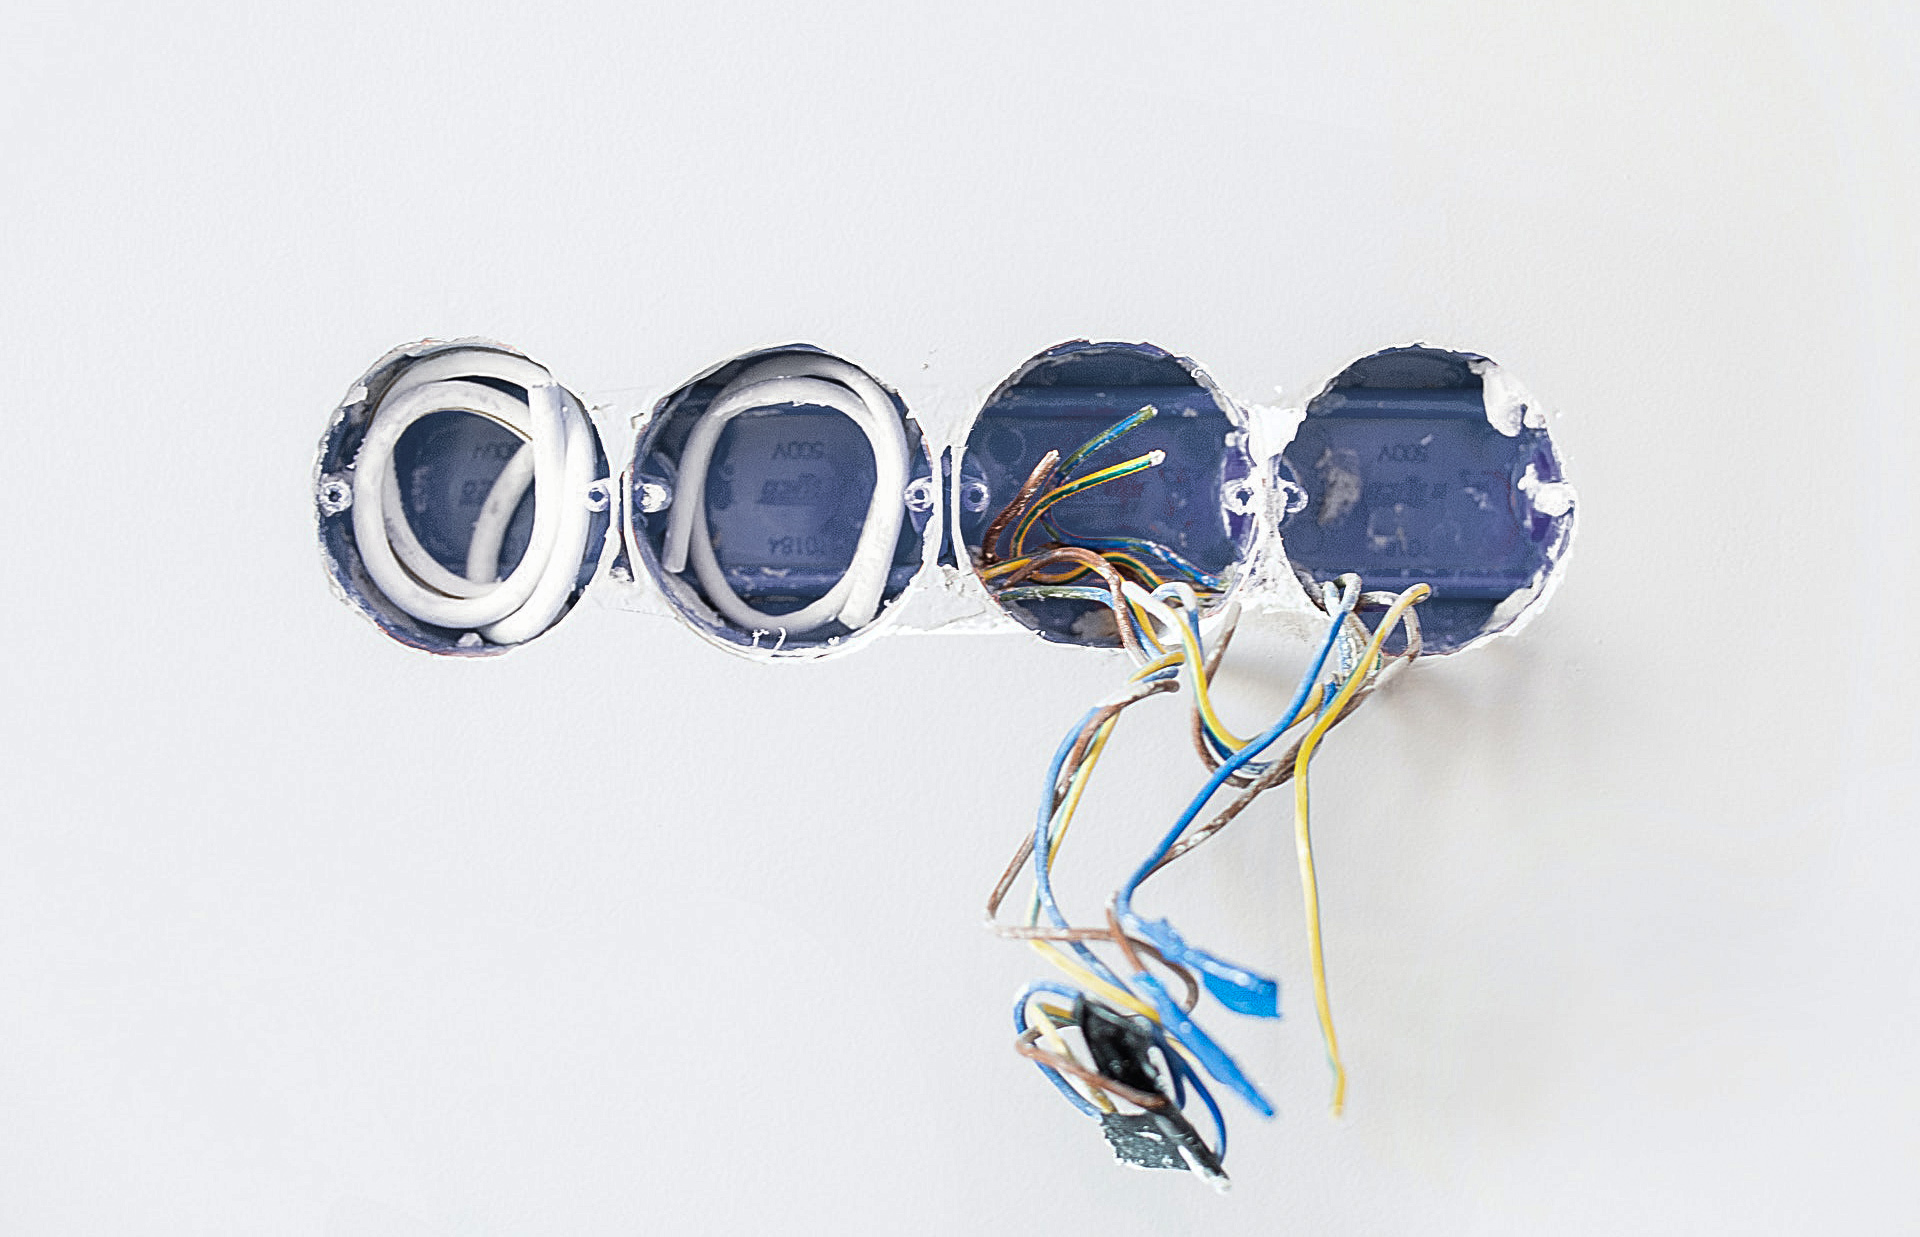 Four holes made by an electrician